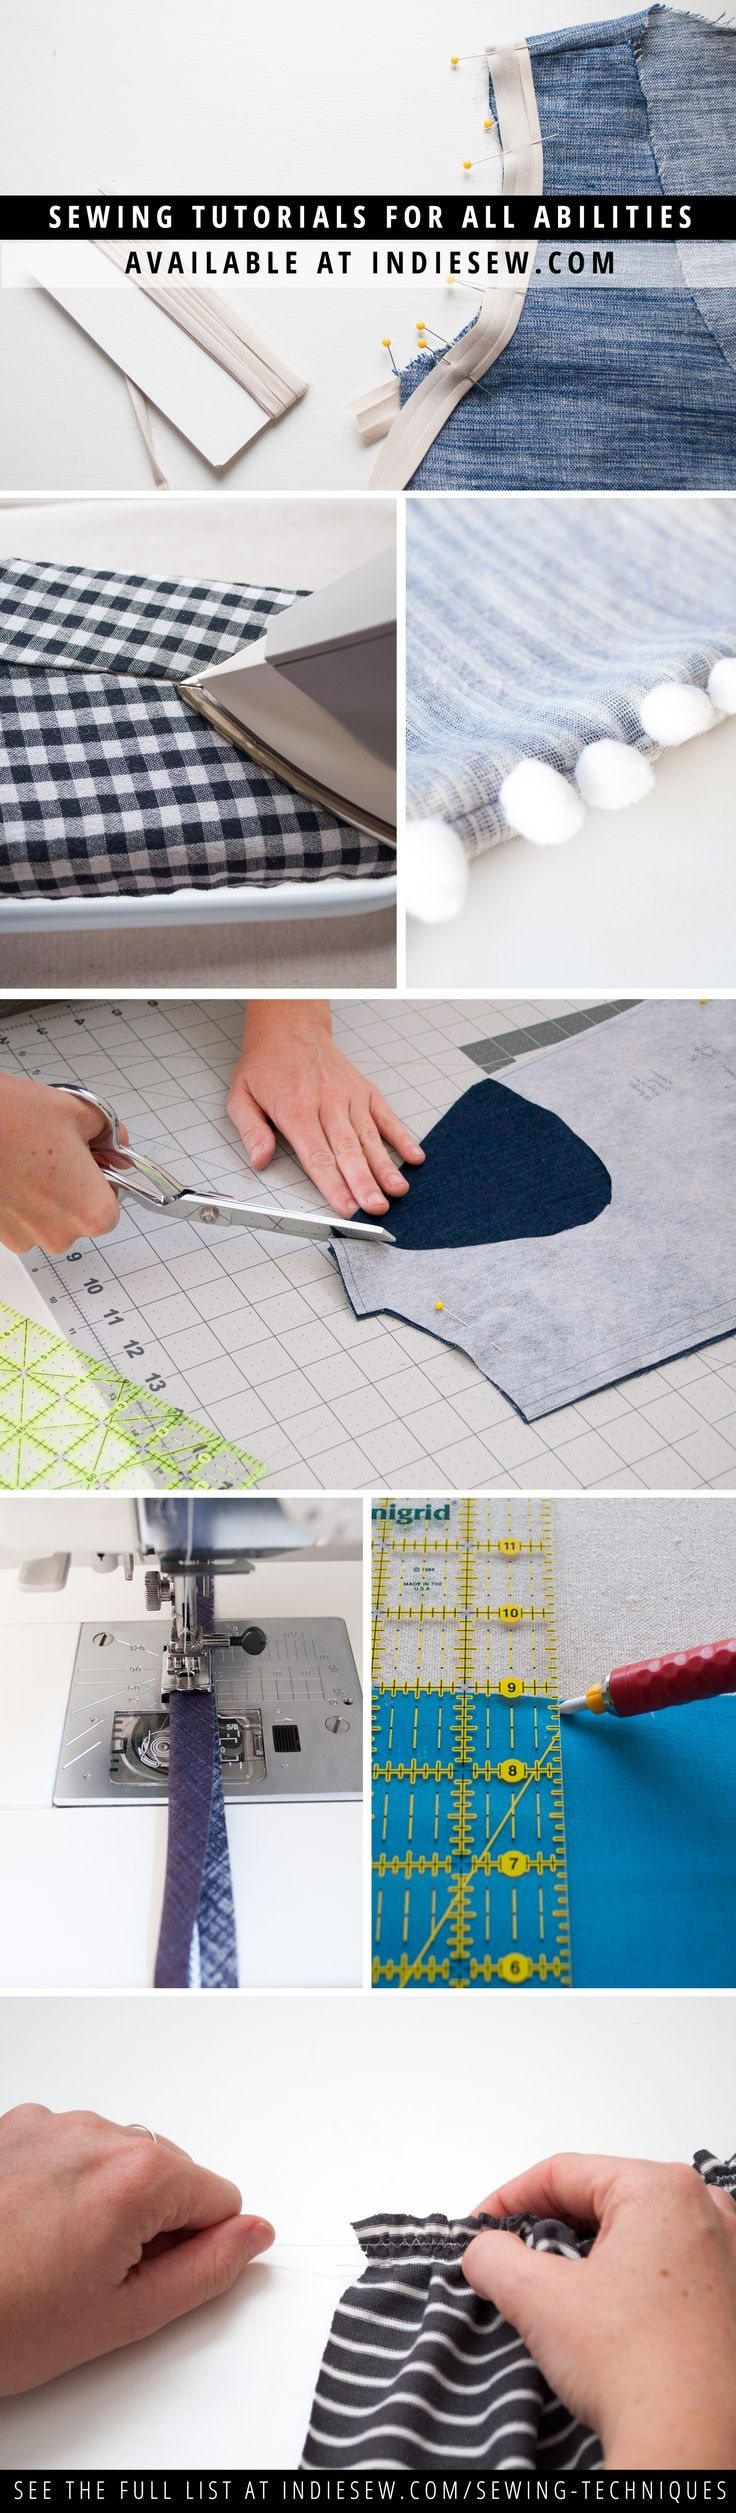 Are you new to sewing? Or a seasoned pro who just needs to work on a few skills? Learn sewing techniques including beginner, intermediate, knits & wovens. | Indiesew.com